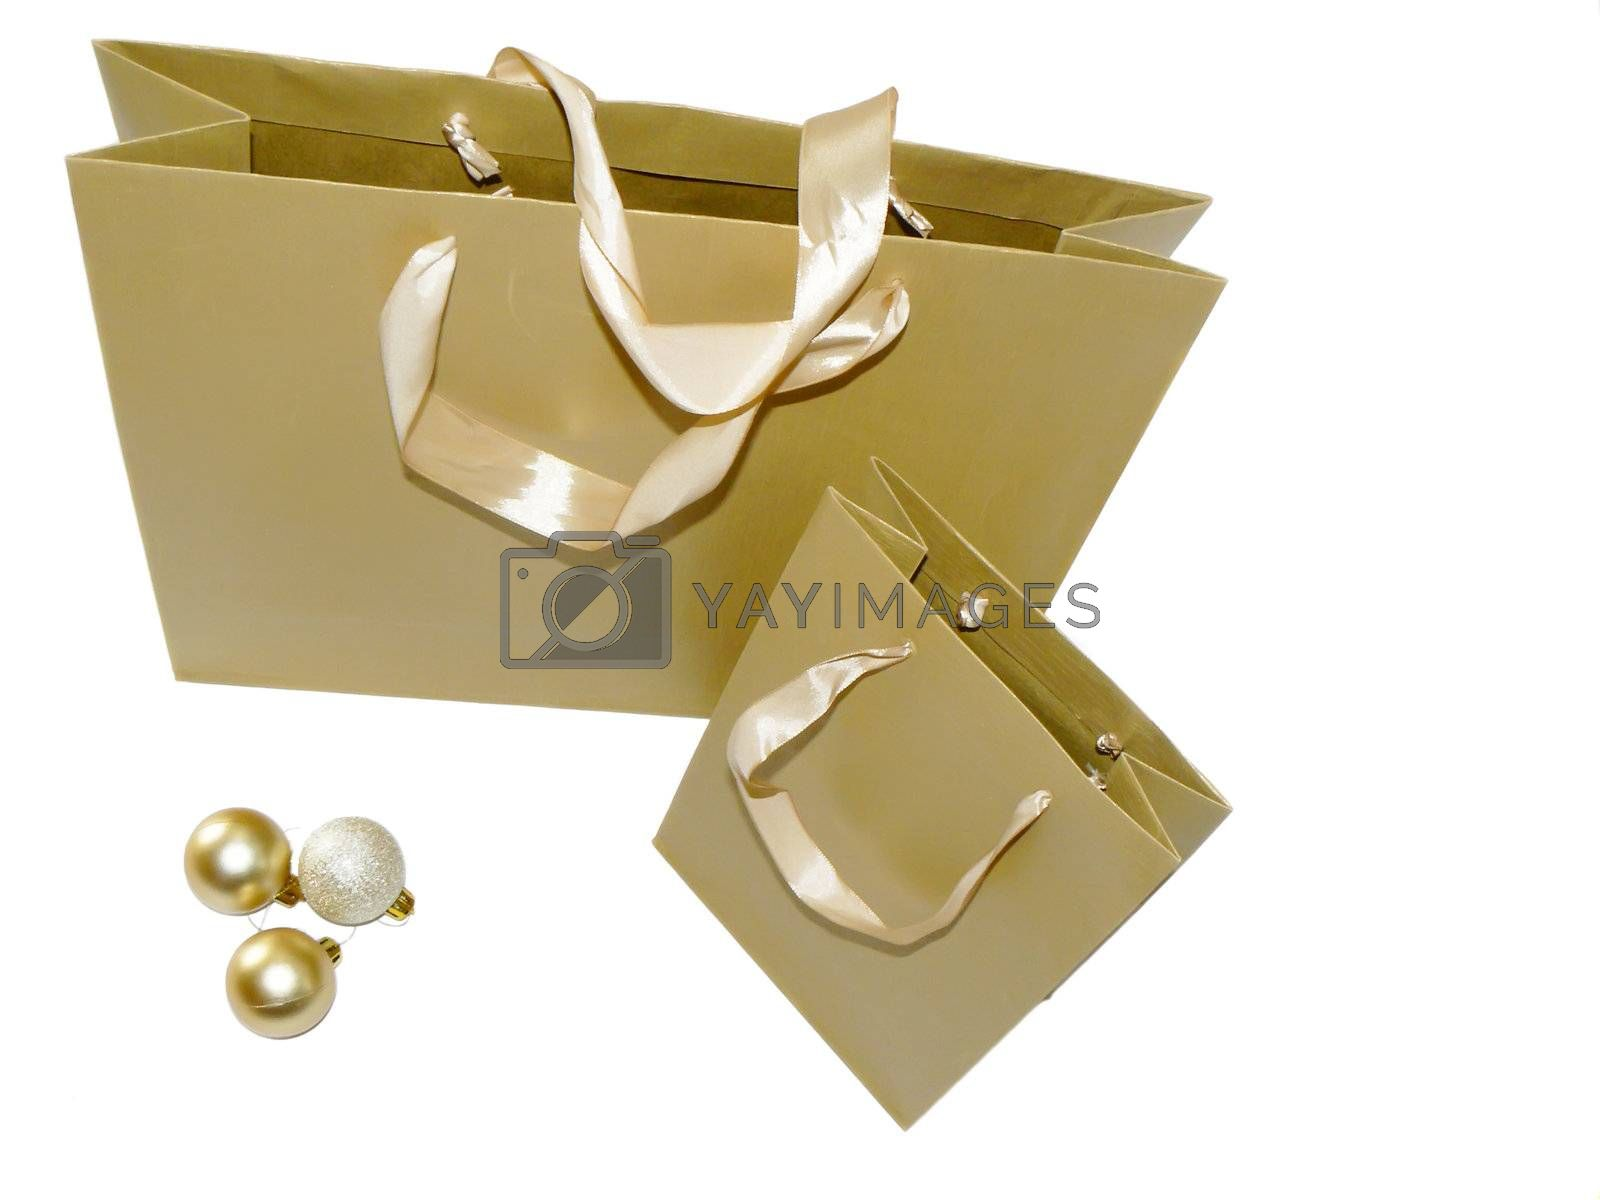 Shopping bags and xmas toys isolated on white